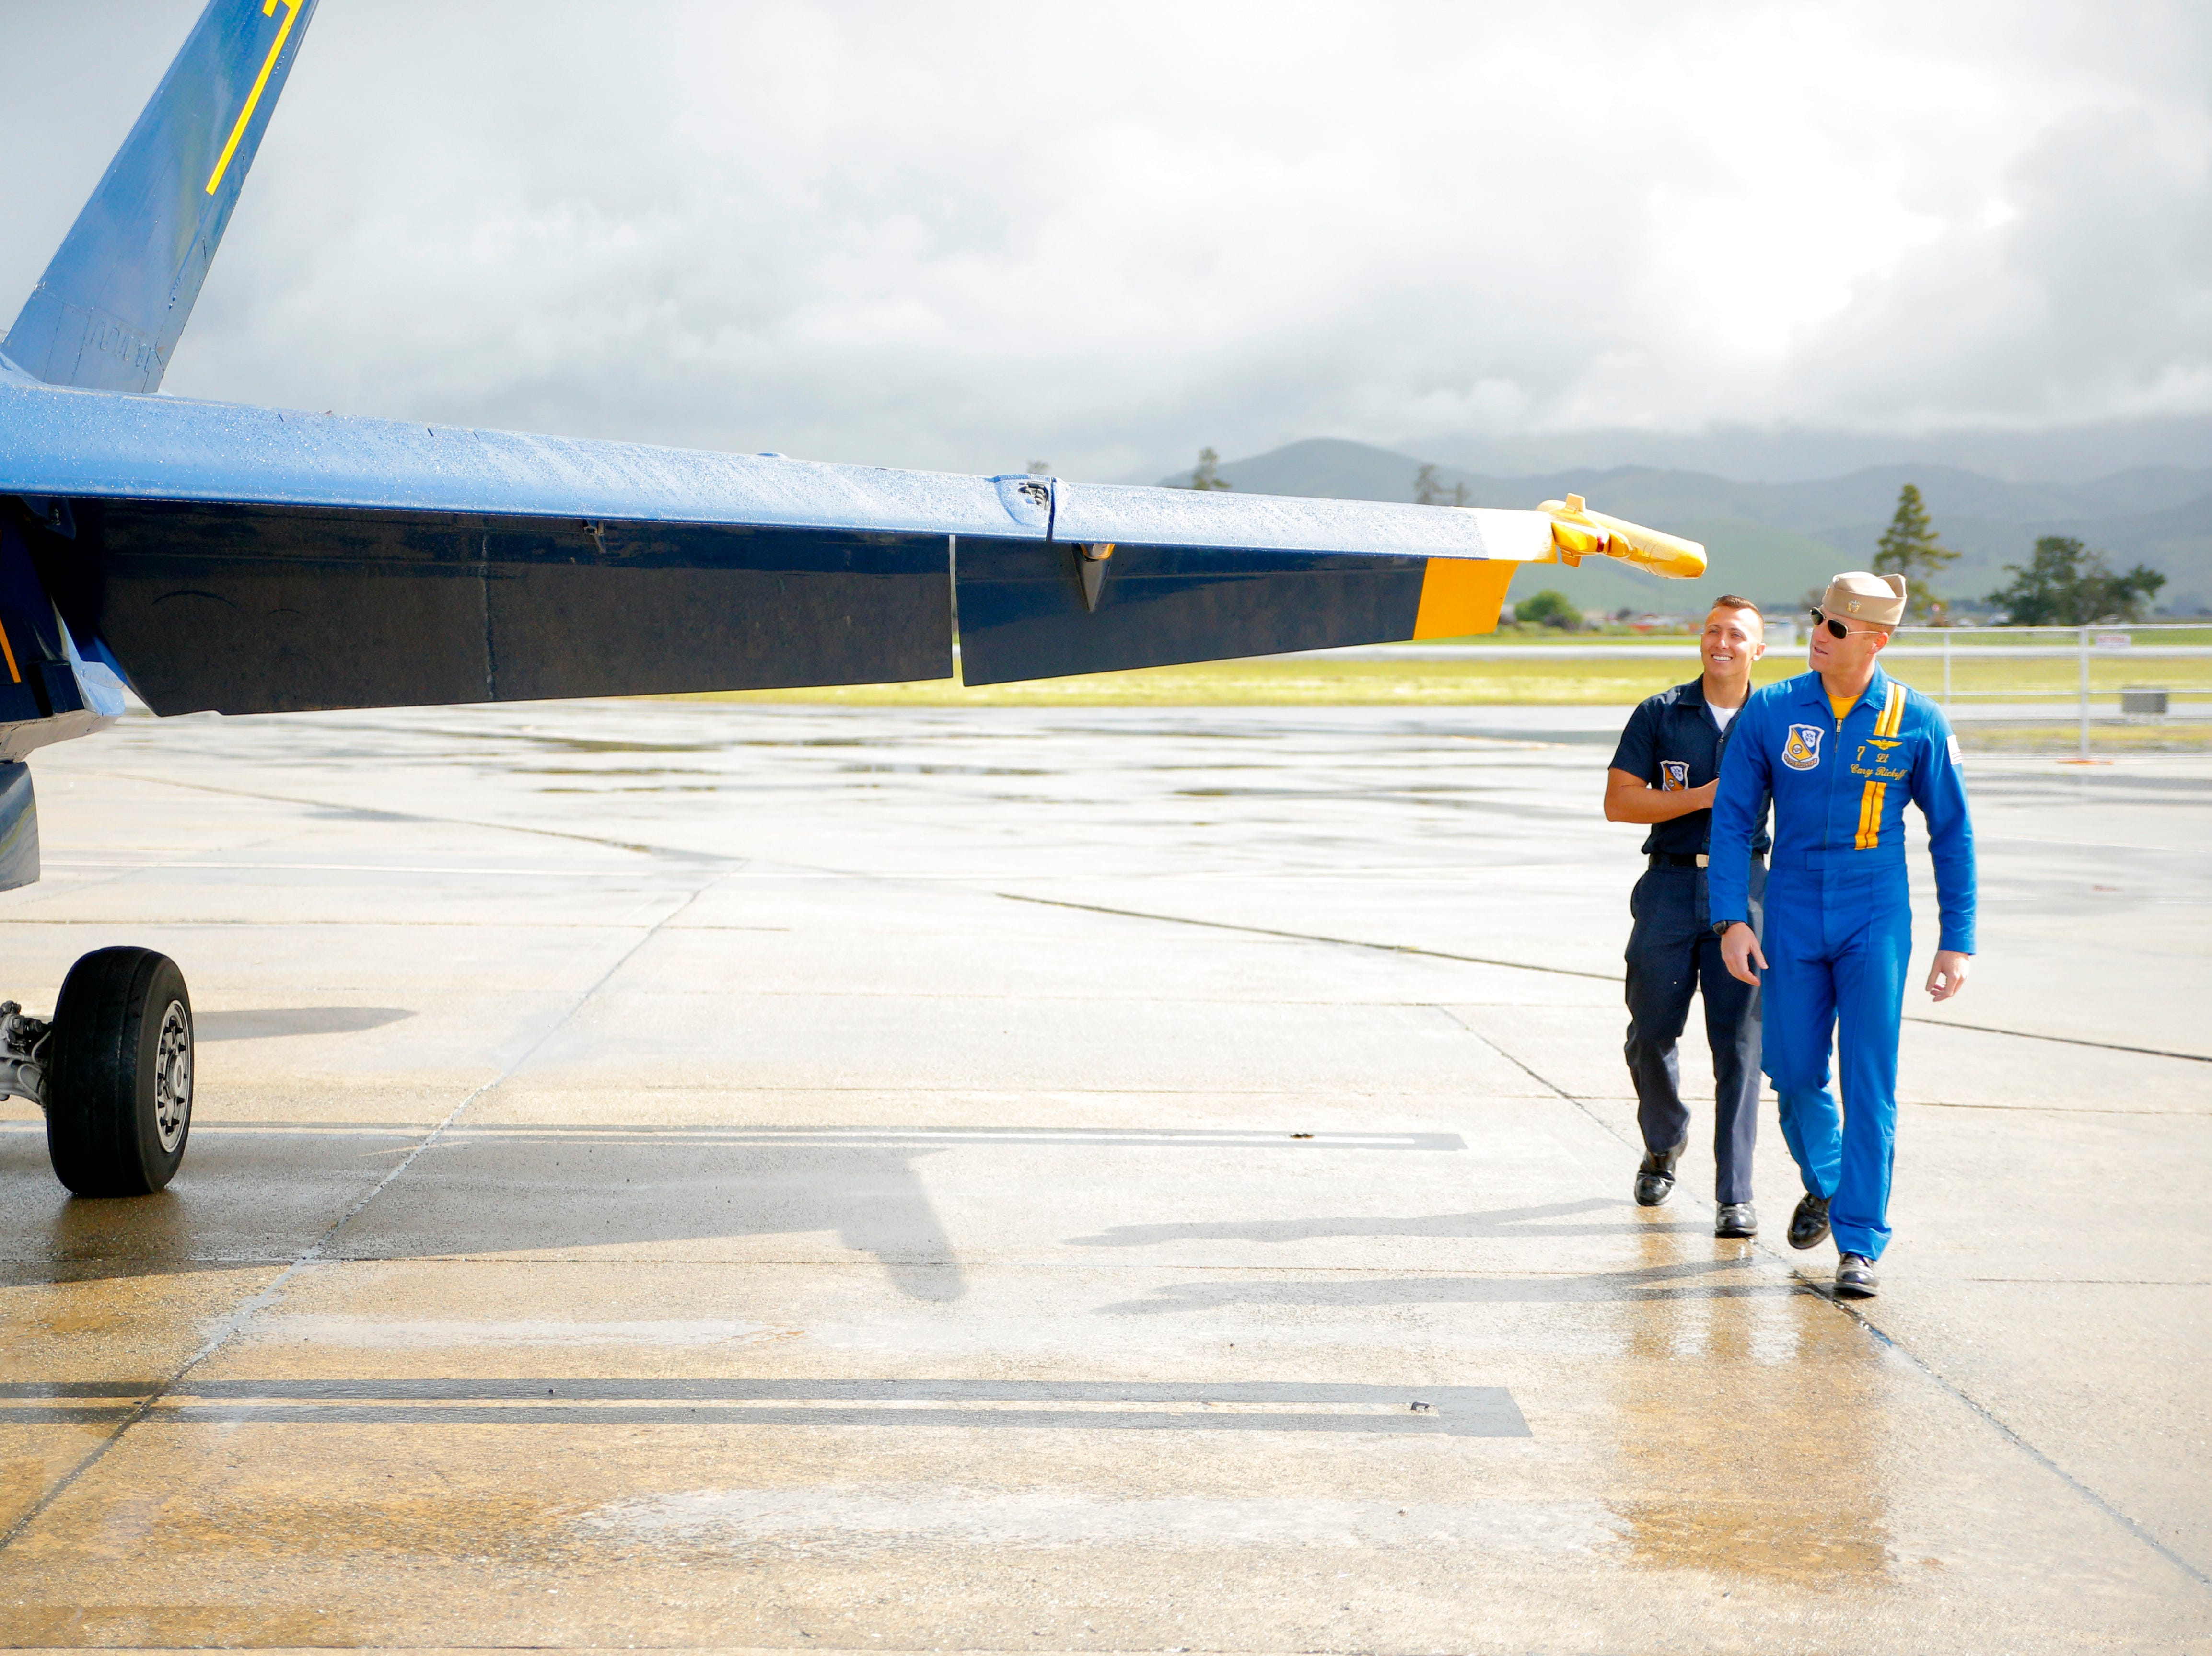 (From left:) U.S. Navy Petty Officer Kyle Wood and Lt. Cary Rickoff approach a jet fighter March 20, 2019. Rickoff piloted the jet to give Daniel Garcia ride before the California International Airshow Salinas.